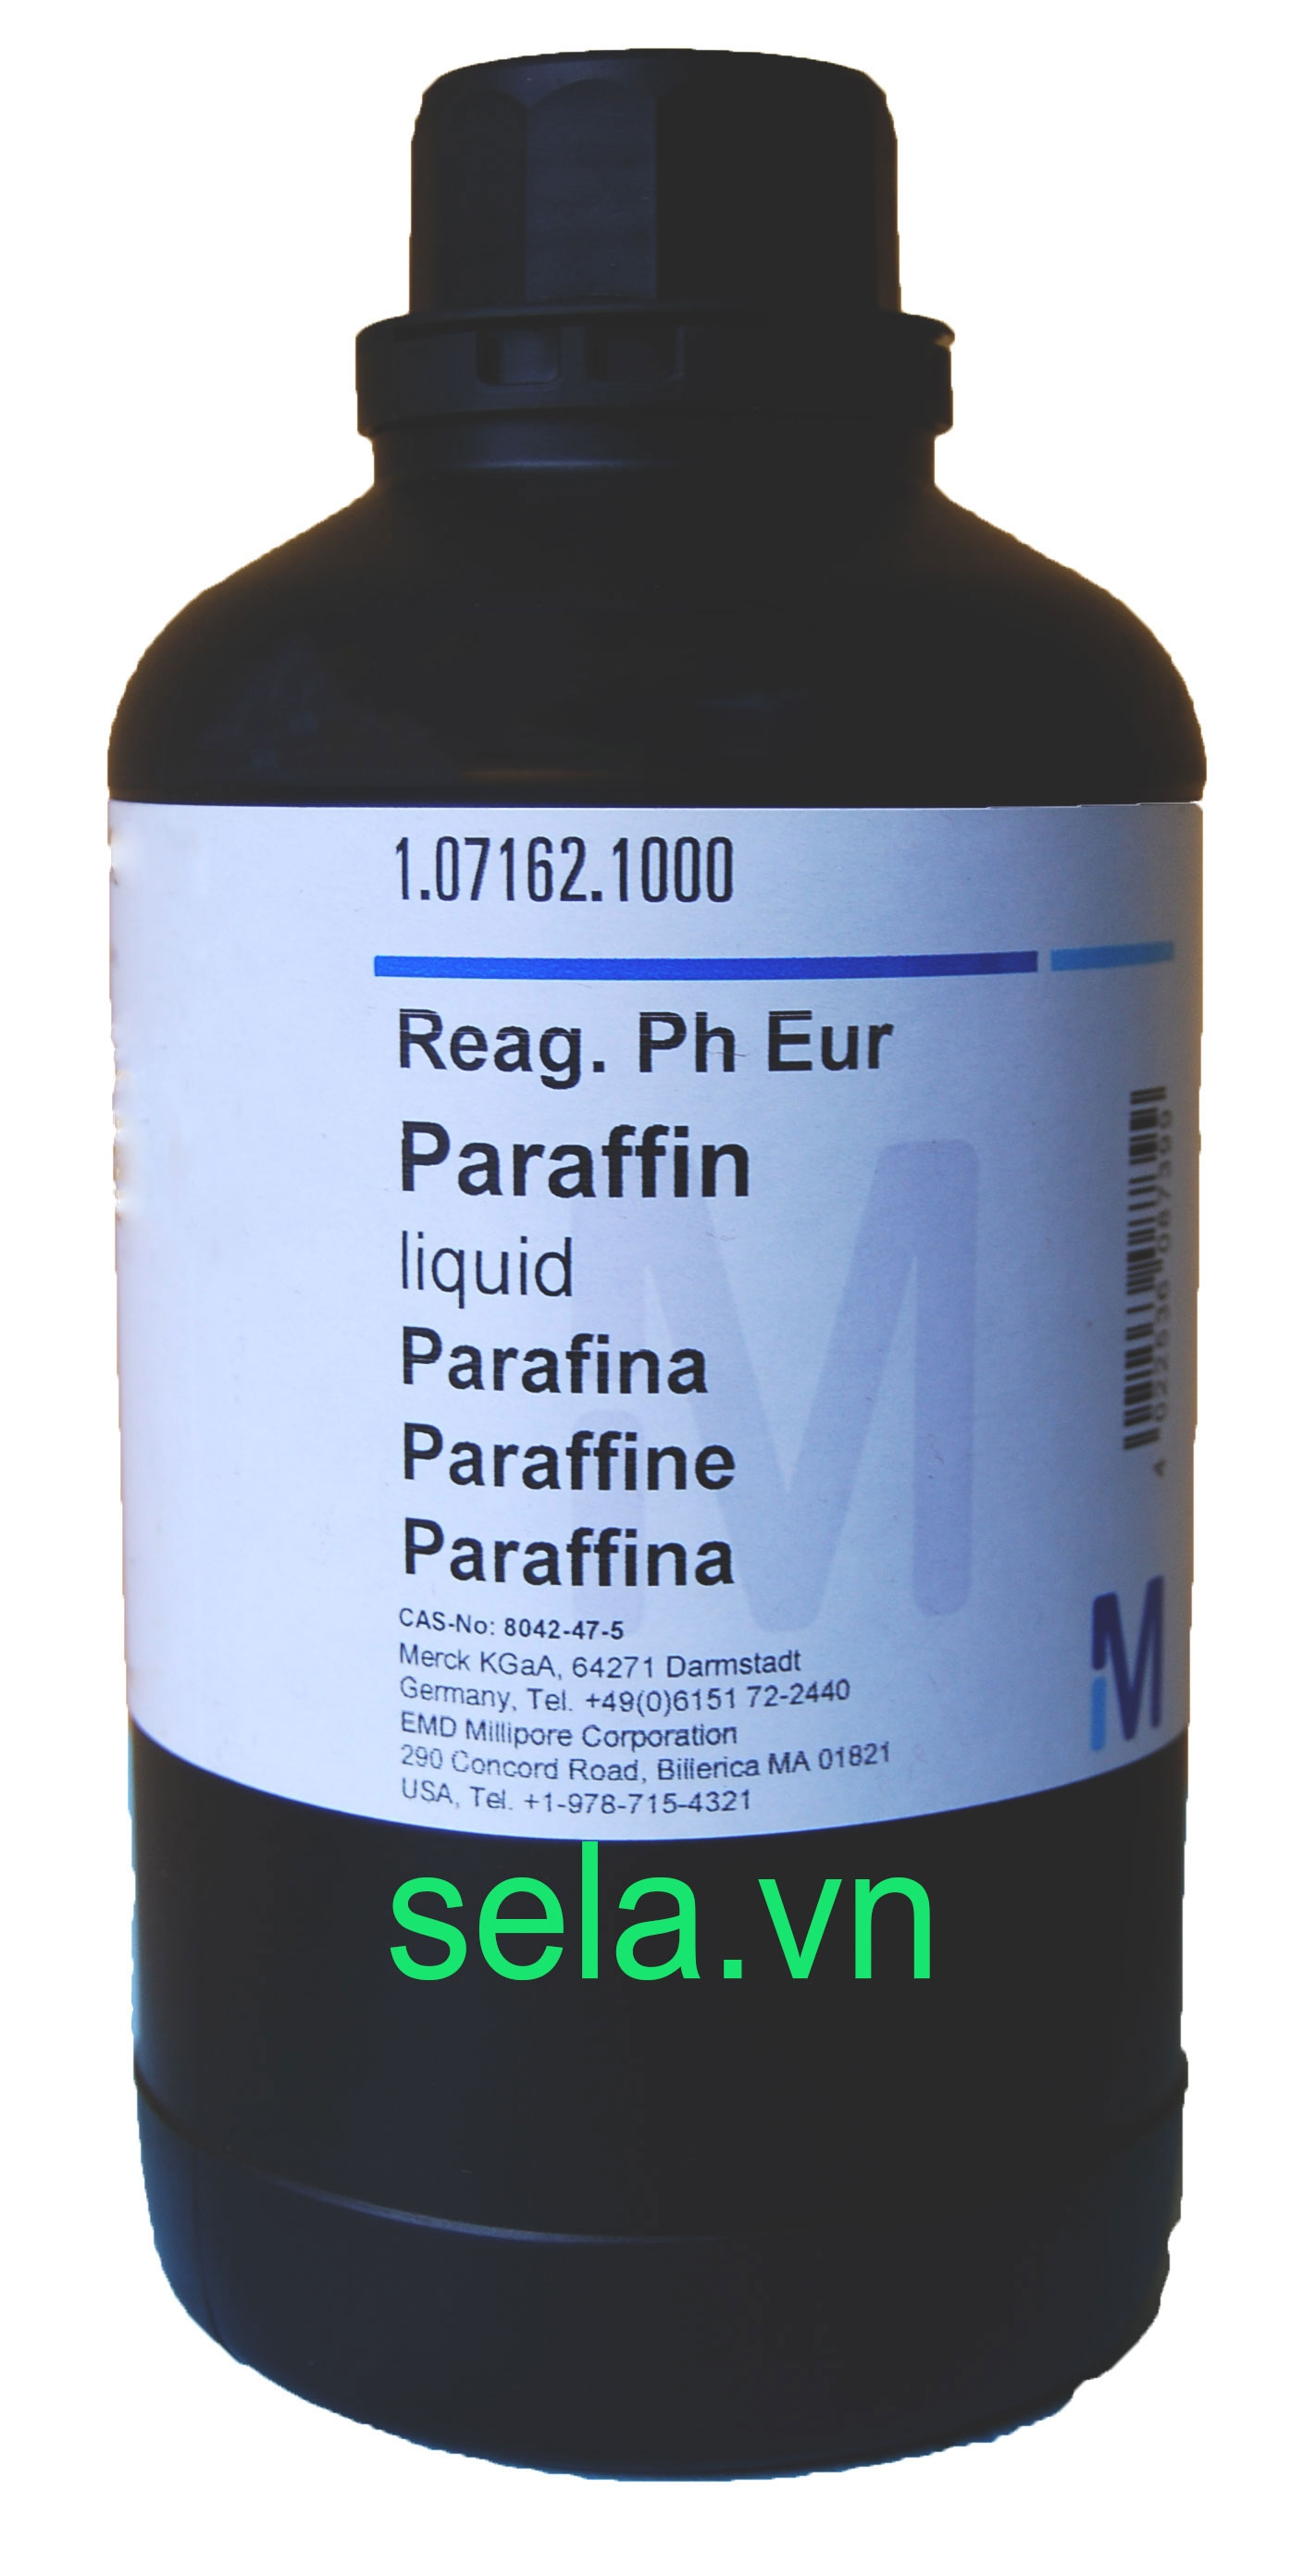 Paraffin liquid Reag. Ph Eur